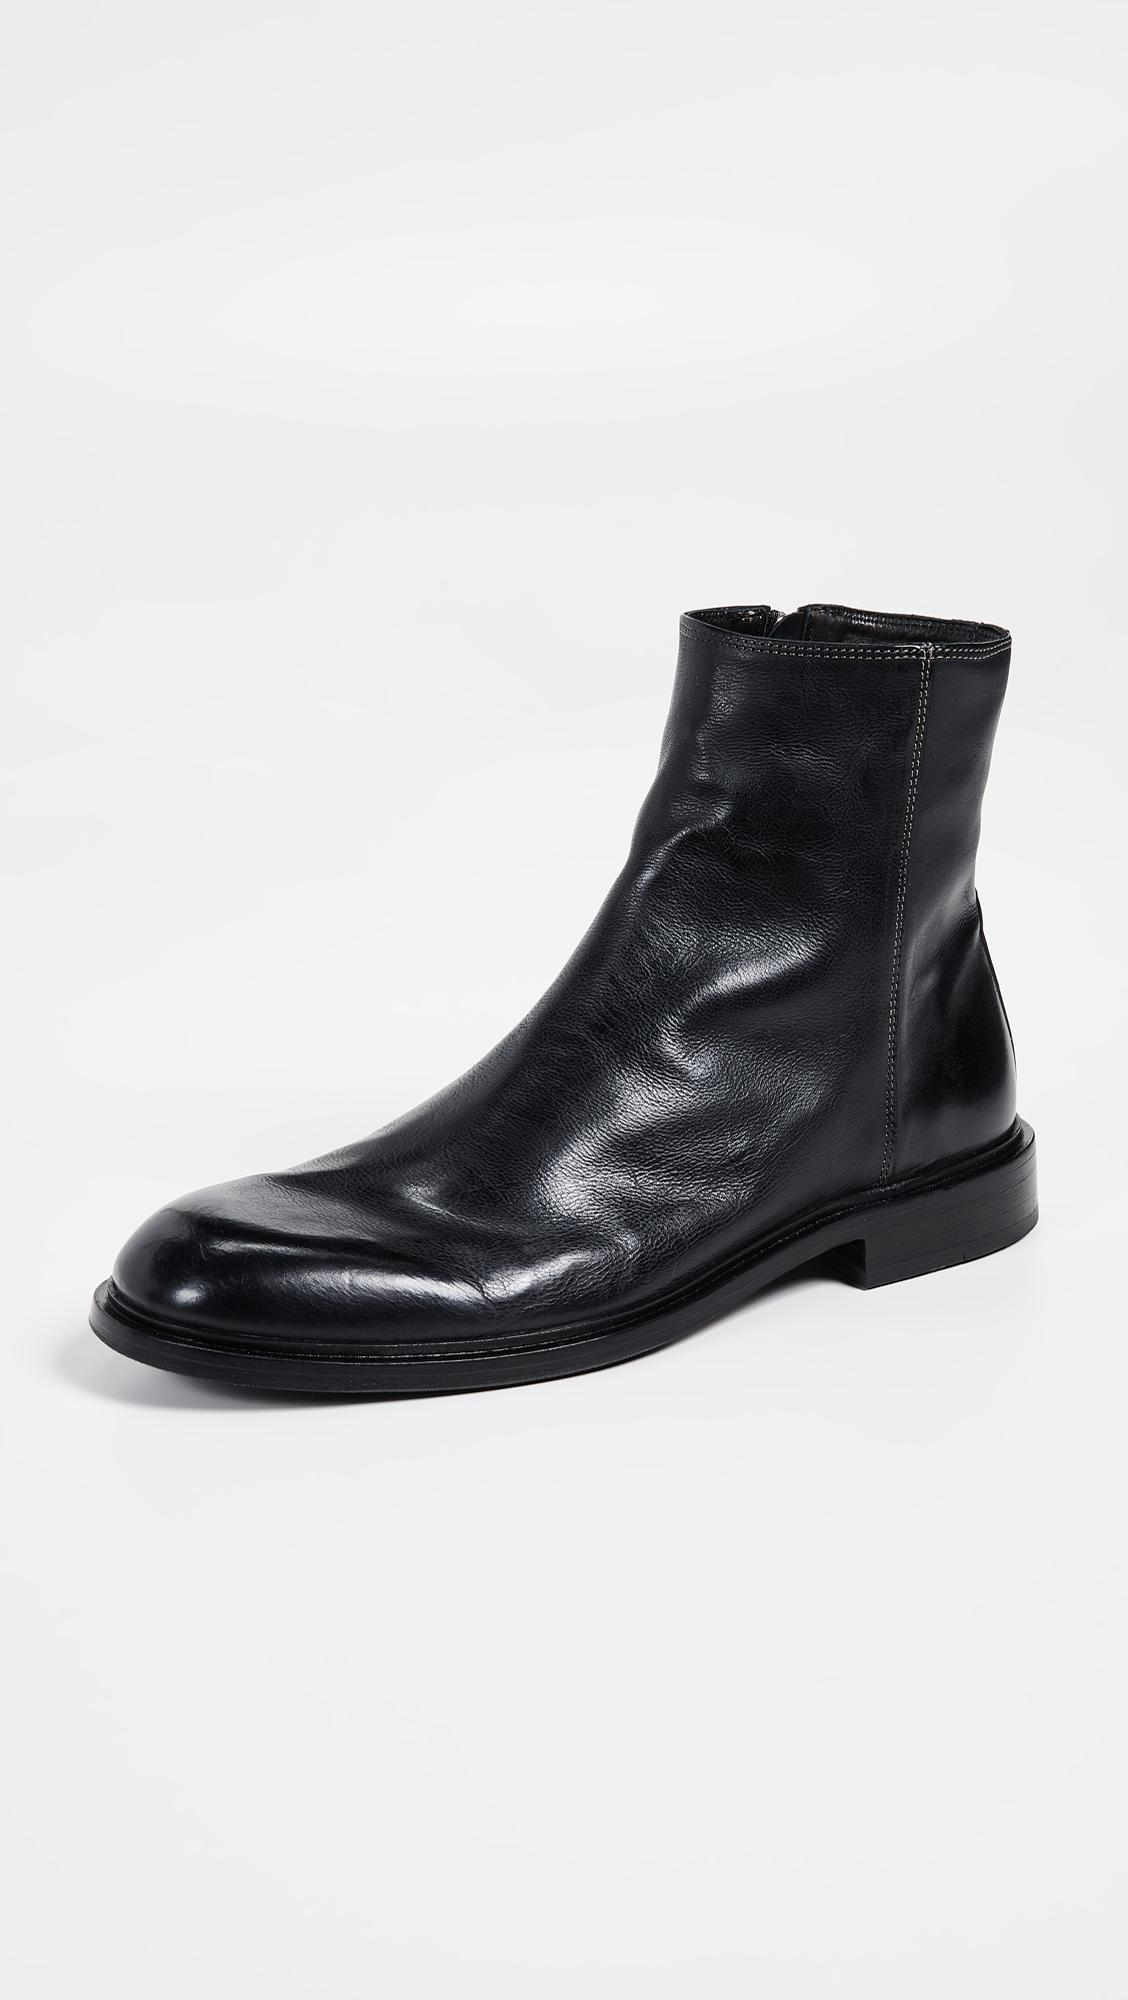 9273194e9a5 Ps By Paul Smith Billy Boots in Black for Men - Lyst